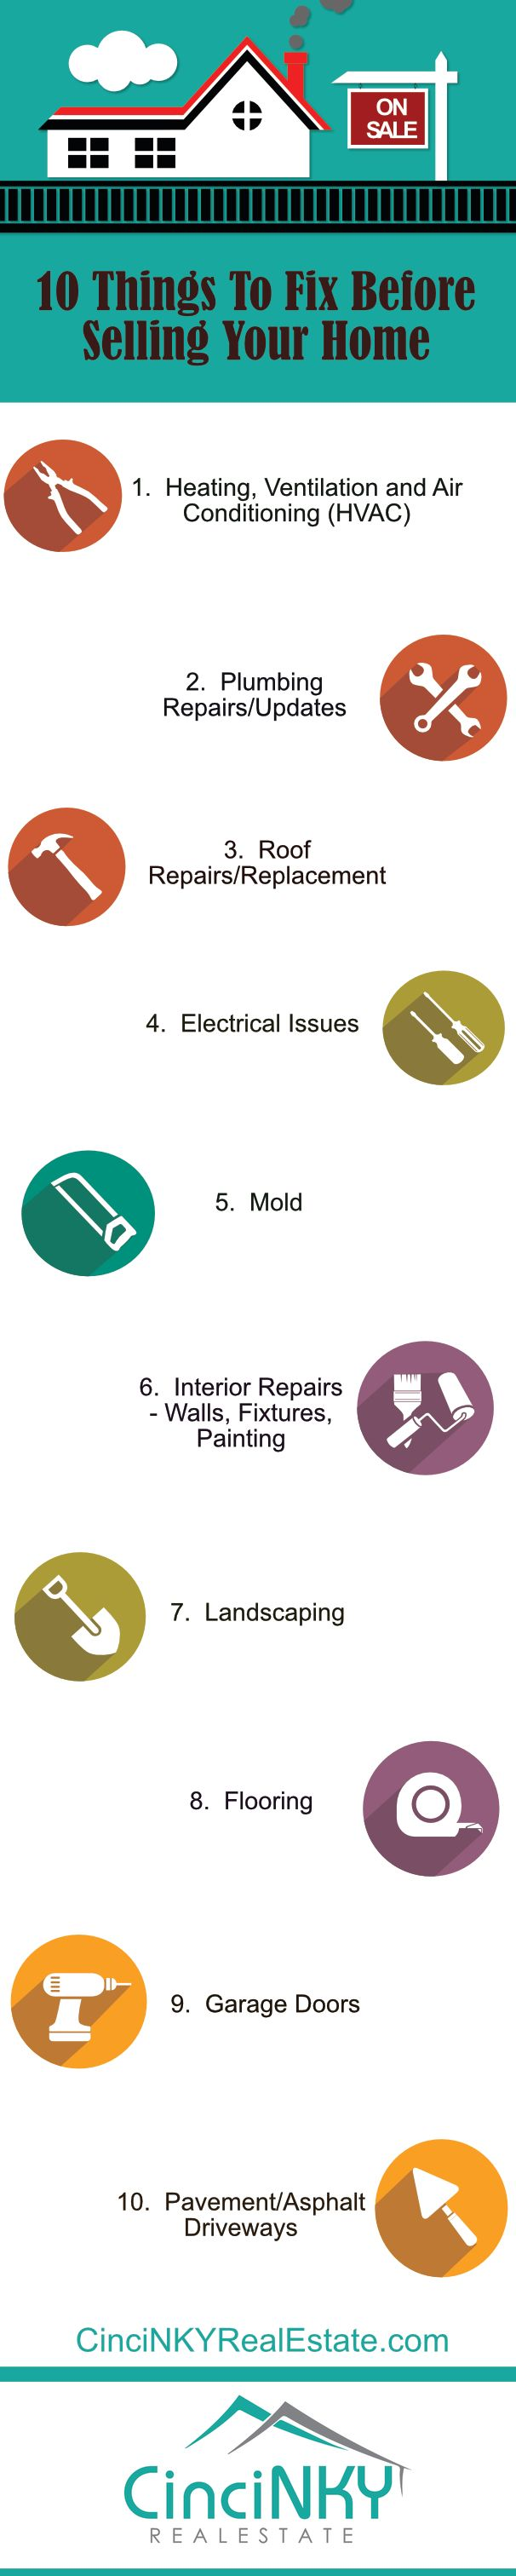 10 Things To Fix Before Selling Your Home: http://cincinkyrealestate.com/10-things-to-fling-your-home/